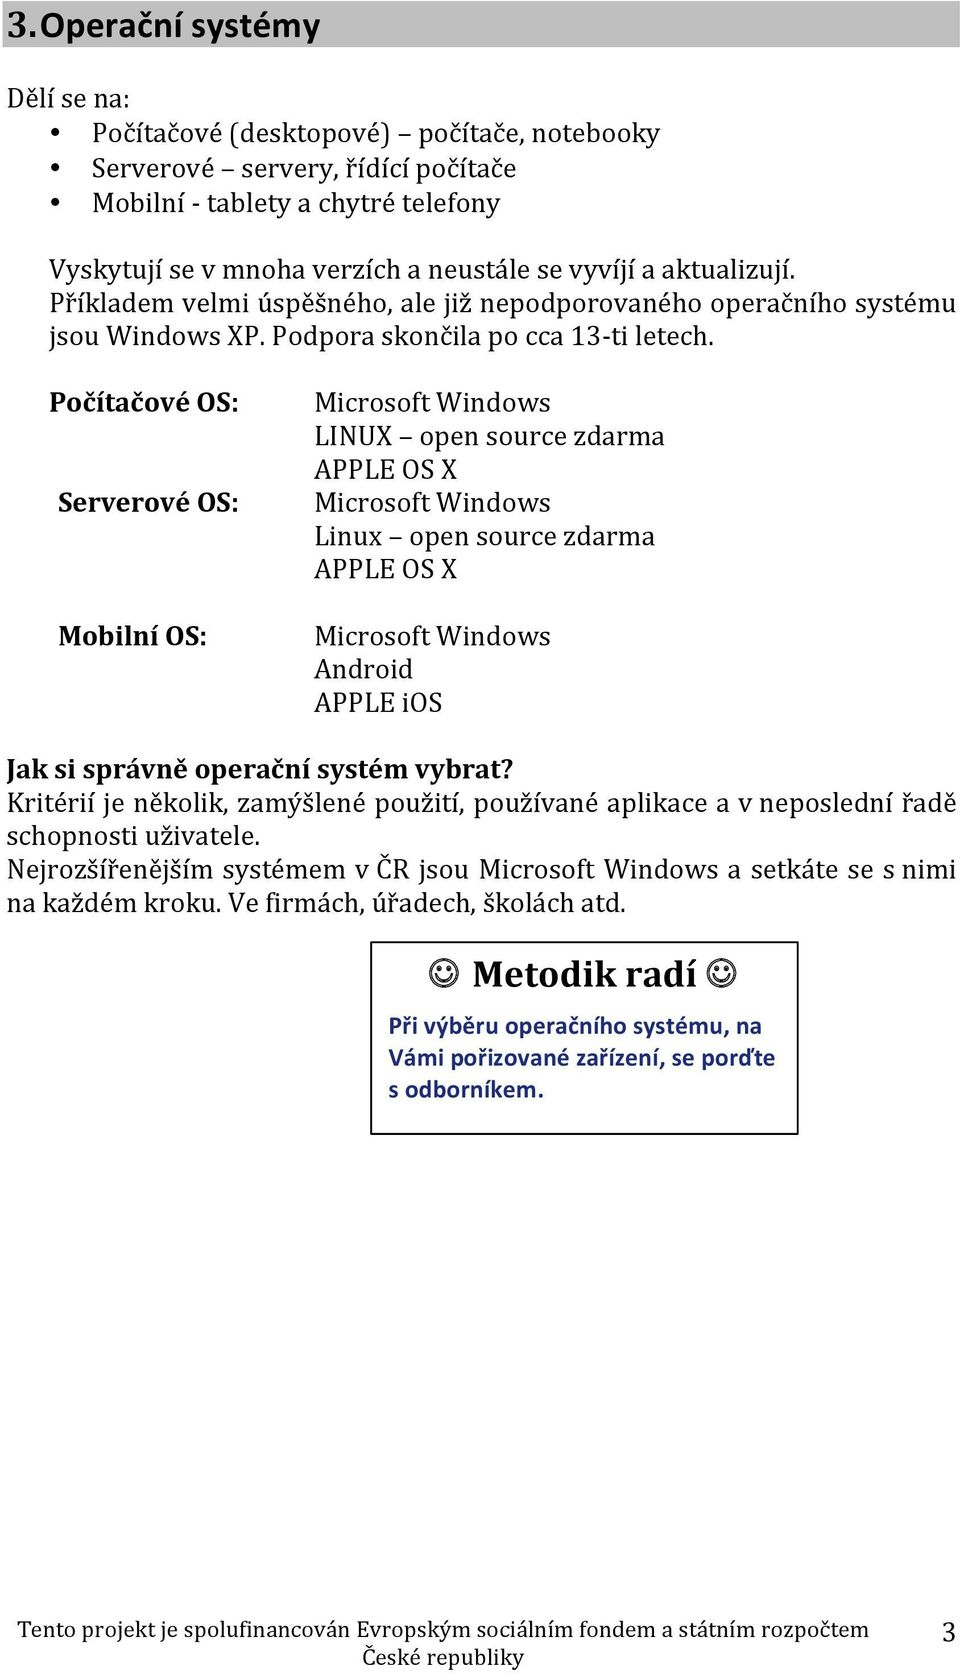 Počítačové OS: Serverové OS: Mobilní OS: Microsoft Windows LINUX open source zdarma APPLE OS X Microsoft Windows Linux open source zdarma APPLE OS X Microsoft Windows Android APPLE ios Jak si správně